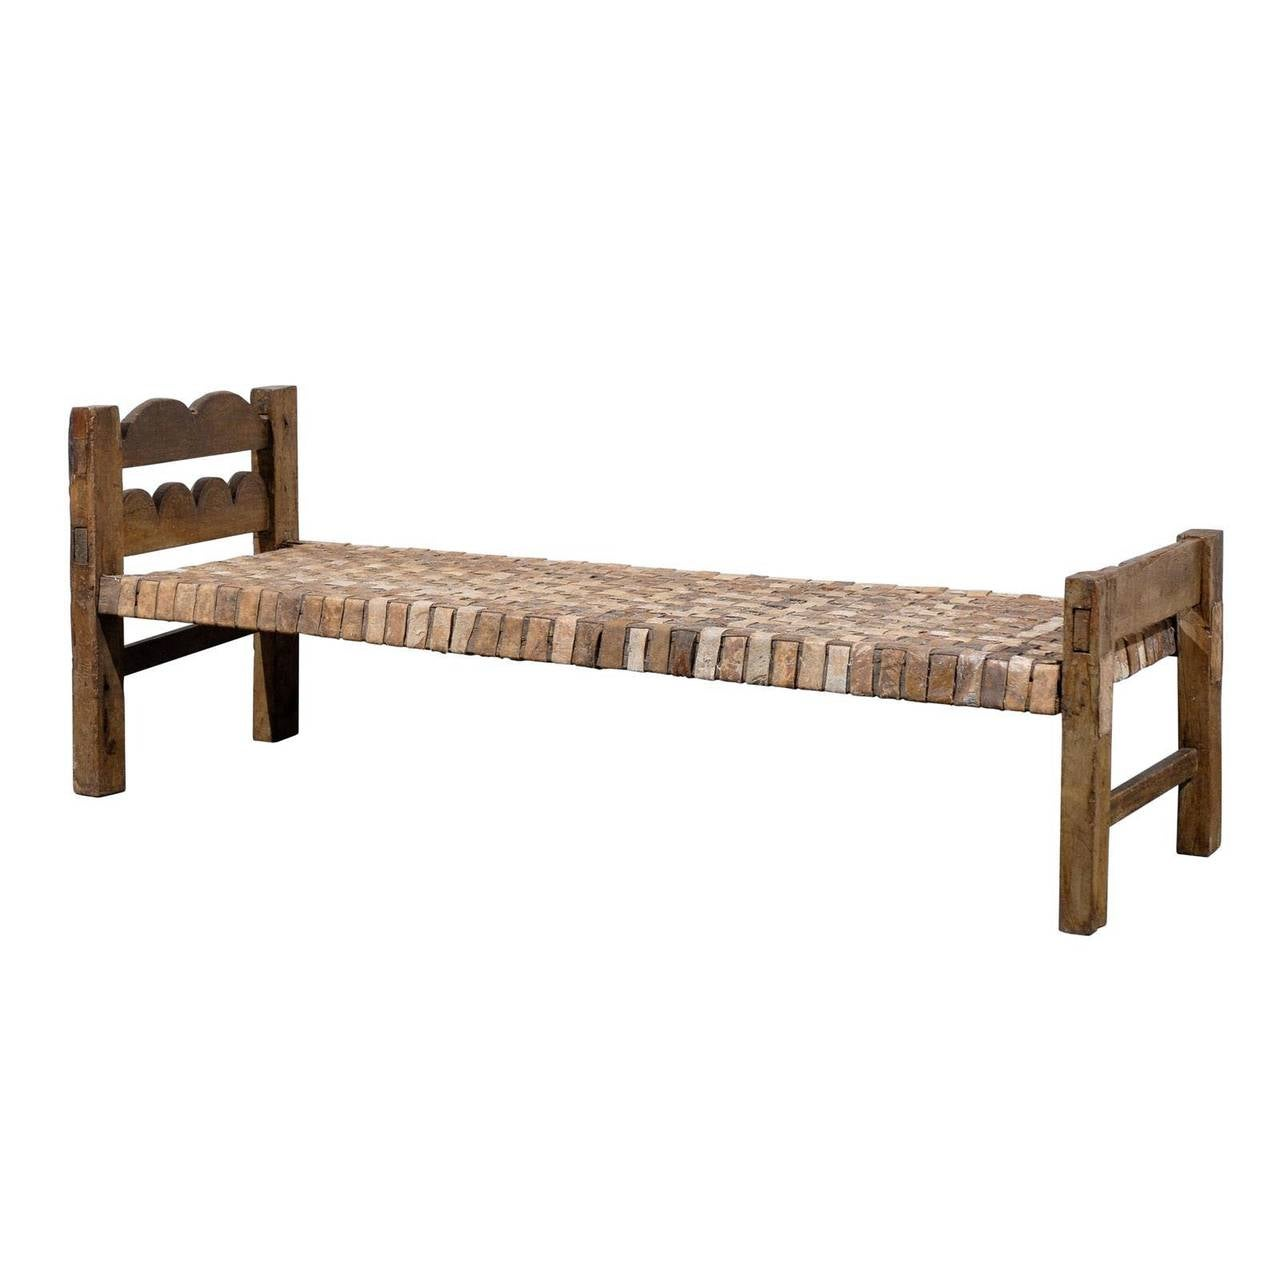 Brazilian Wooden Bench Or Daybed With Cow Hide Seat For Sale At . Full resolution  portrait, nominally Width 1280 Height 1280 pixels, portrait with #382518.